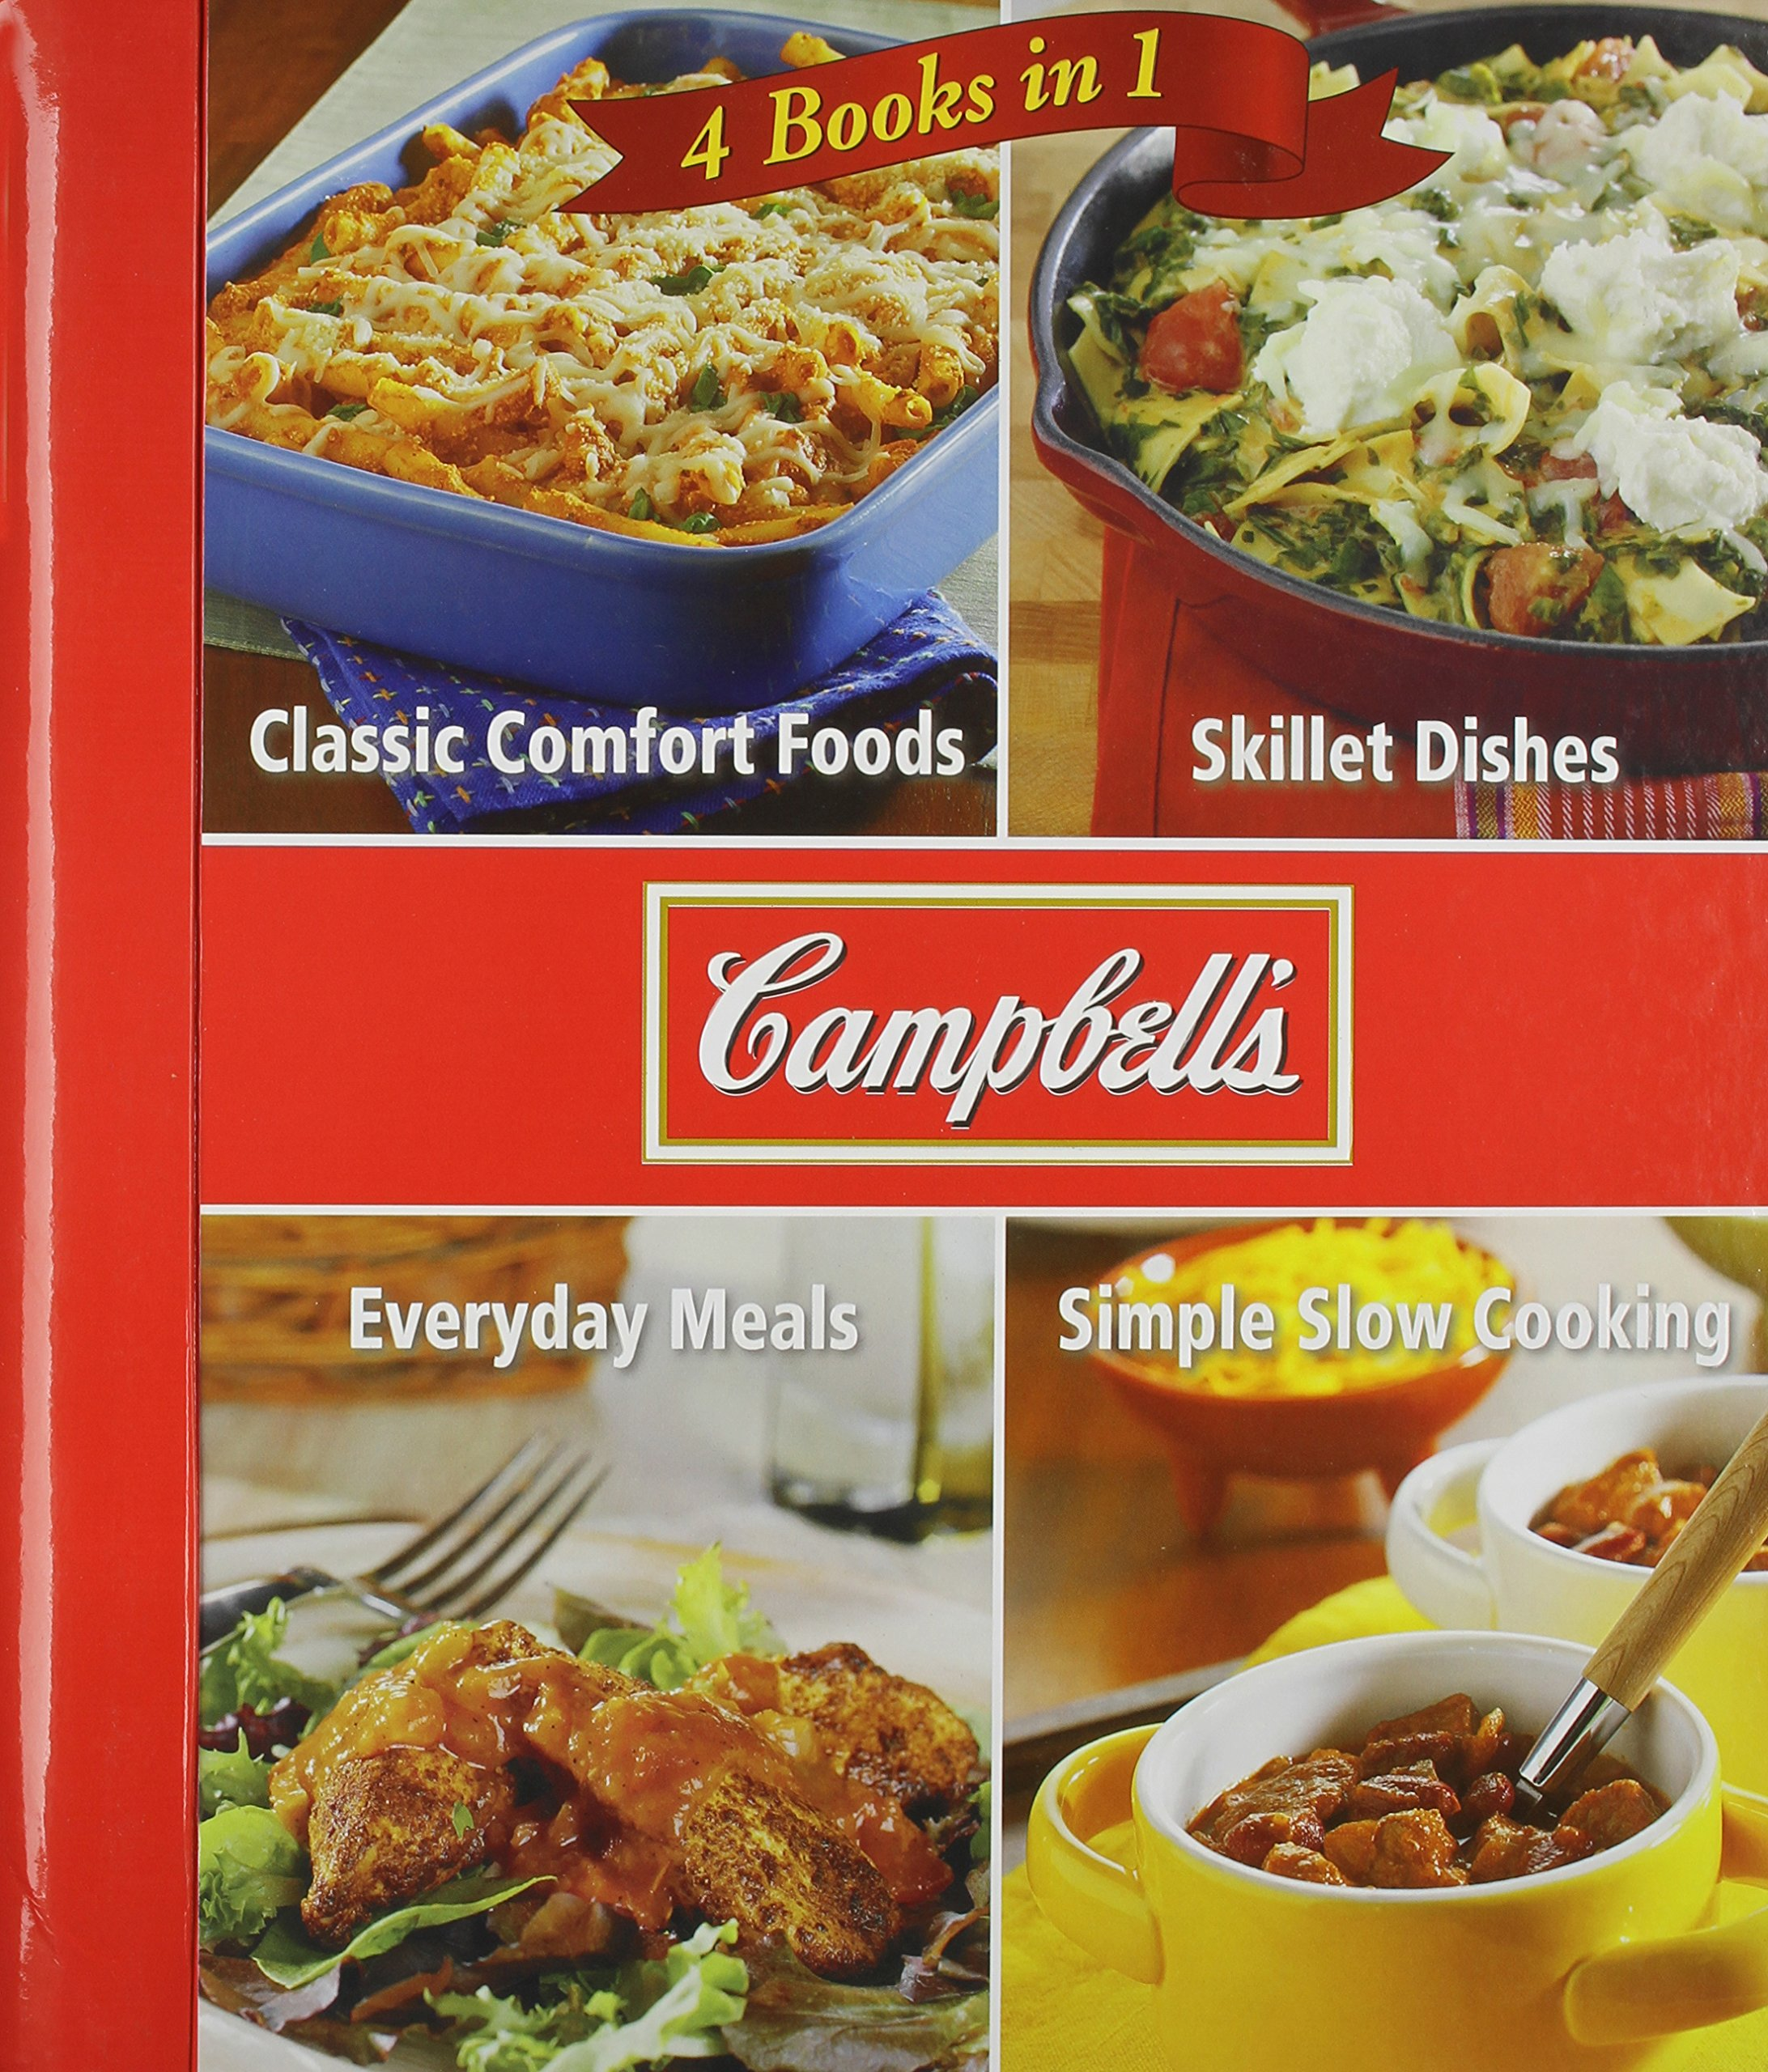 Download Campbell 4 Cookbooks in 1: Classic Comfort Foods, Skillet Dishes, Everyday Meals, Simple Slow Cooking ebook